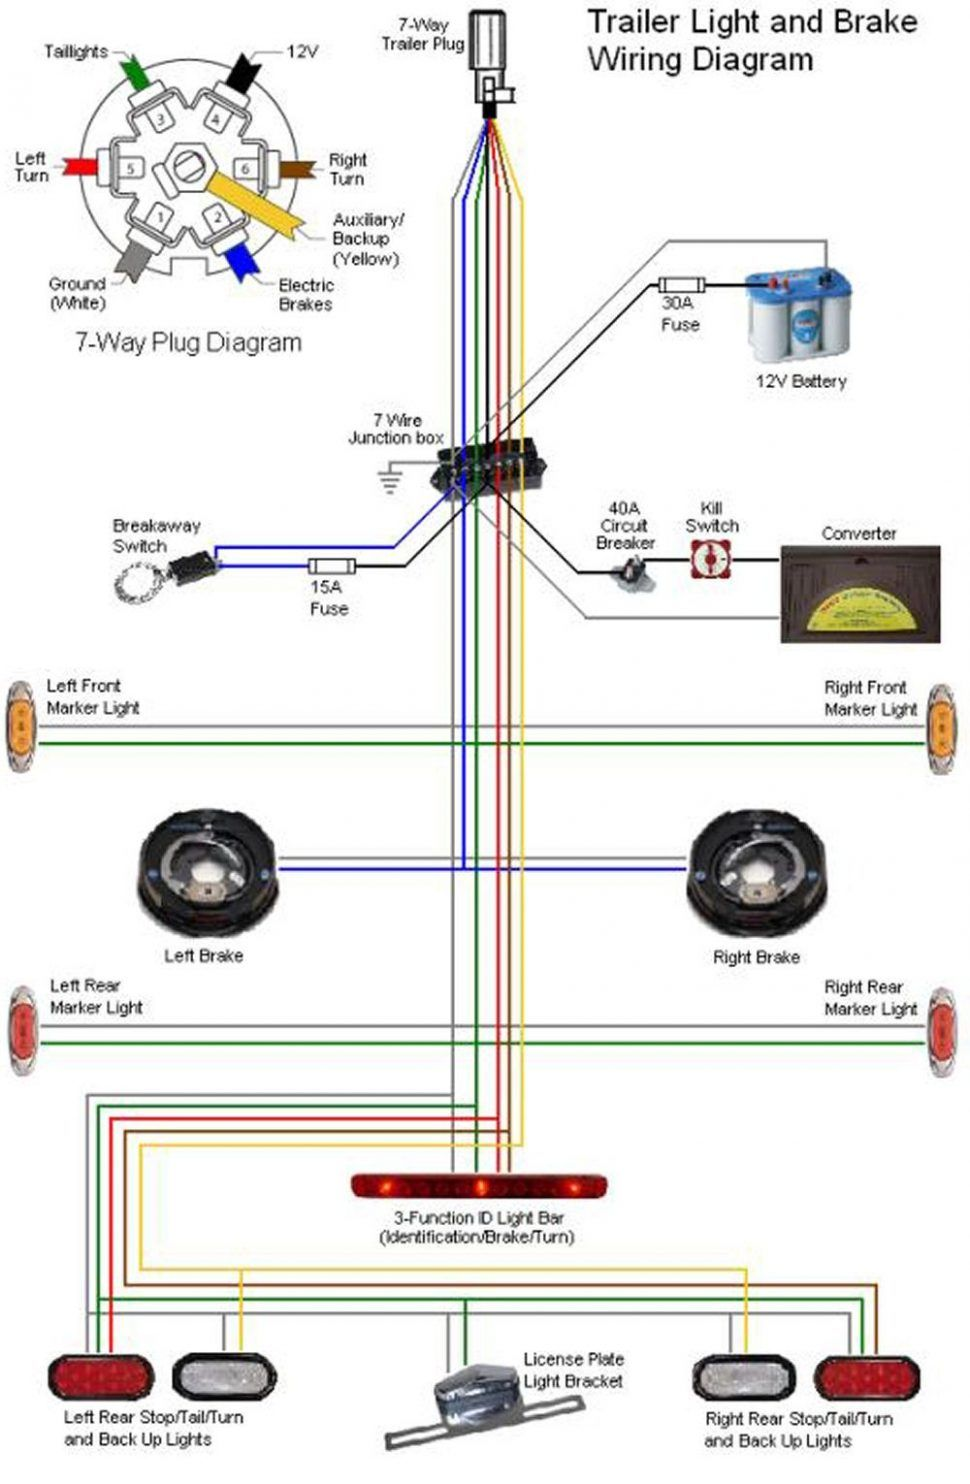 seven pin trailer wiring diagram wiring diagrams gallery trailer wiring 12v batteries in series also utility trailer lights wiring [ 970 x 1484 Pixel ]